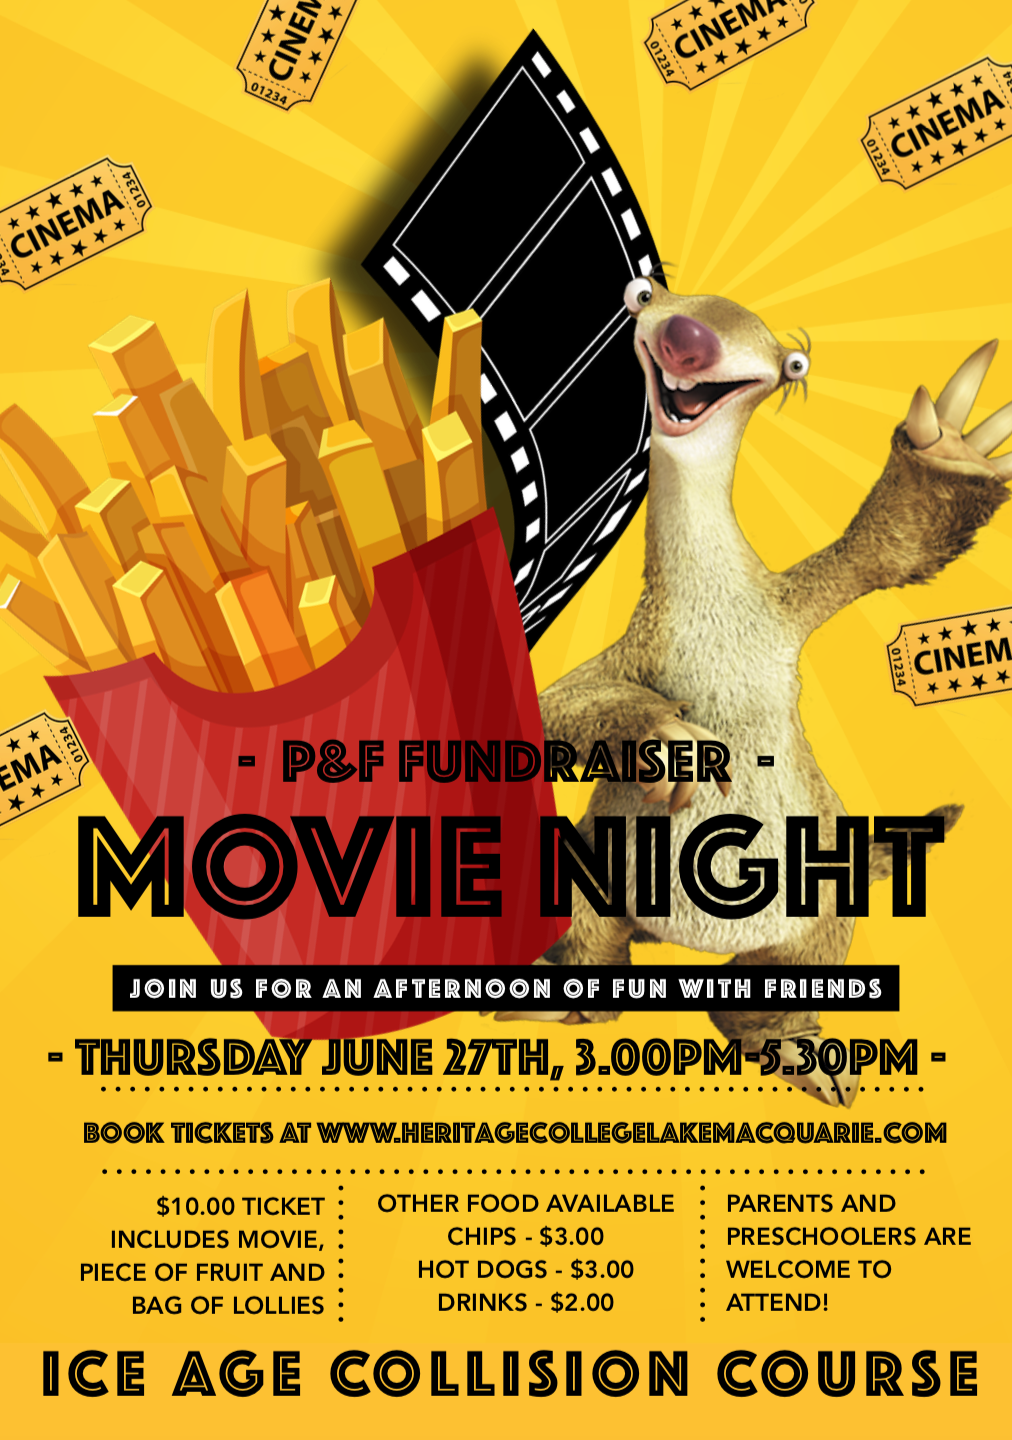 P&F FUNDRAISER - MOVIE NIGHT TICKET